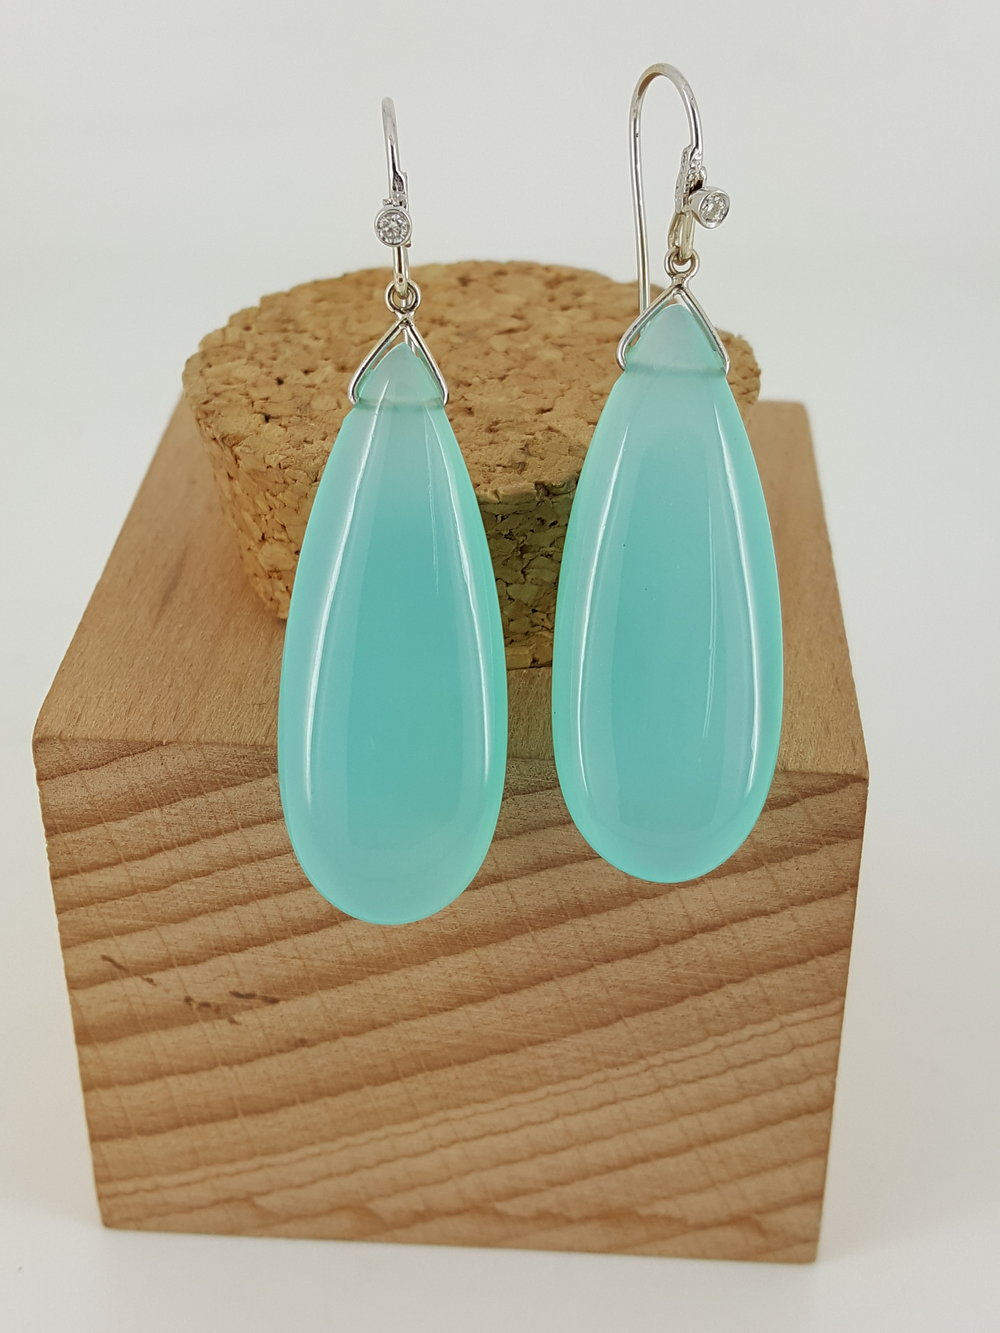 18 Karat White Gold Chalcedony Drop Earrings, accented with a diamond.